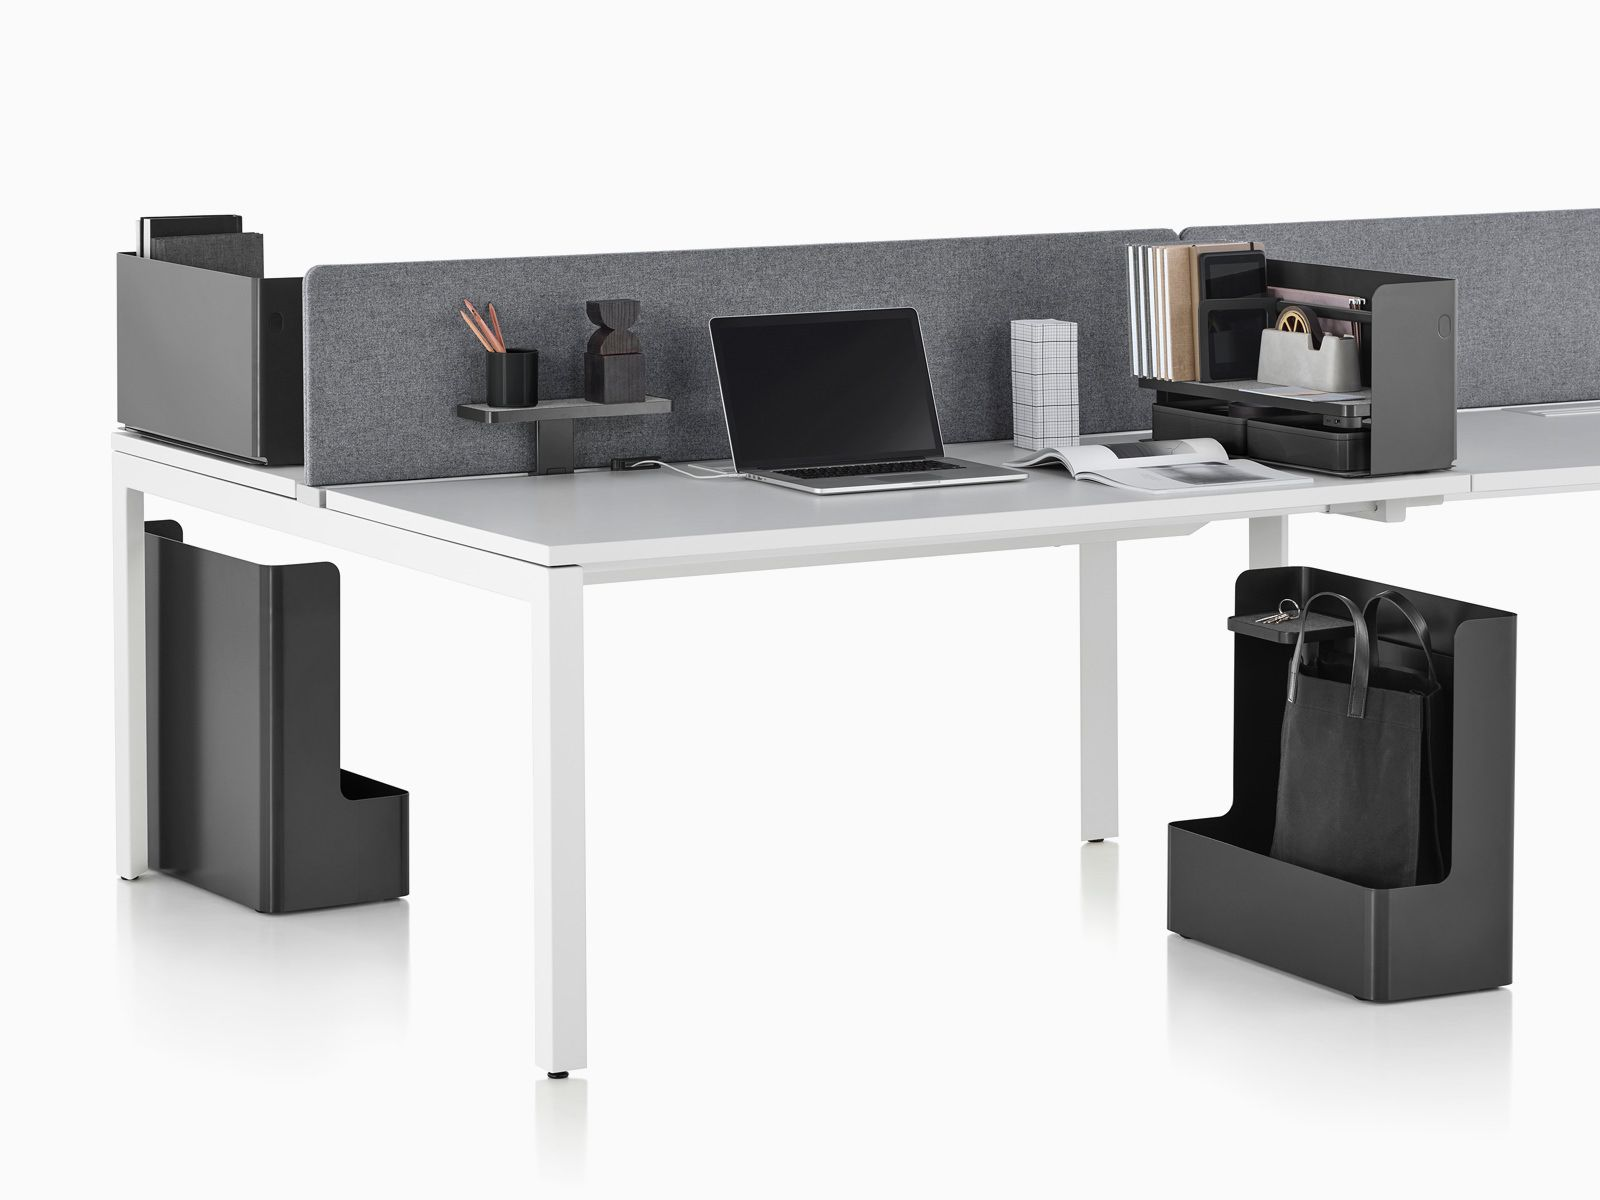 Ubi is a collection of desk accessories that enable people